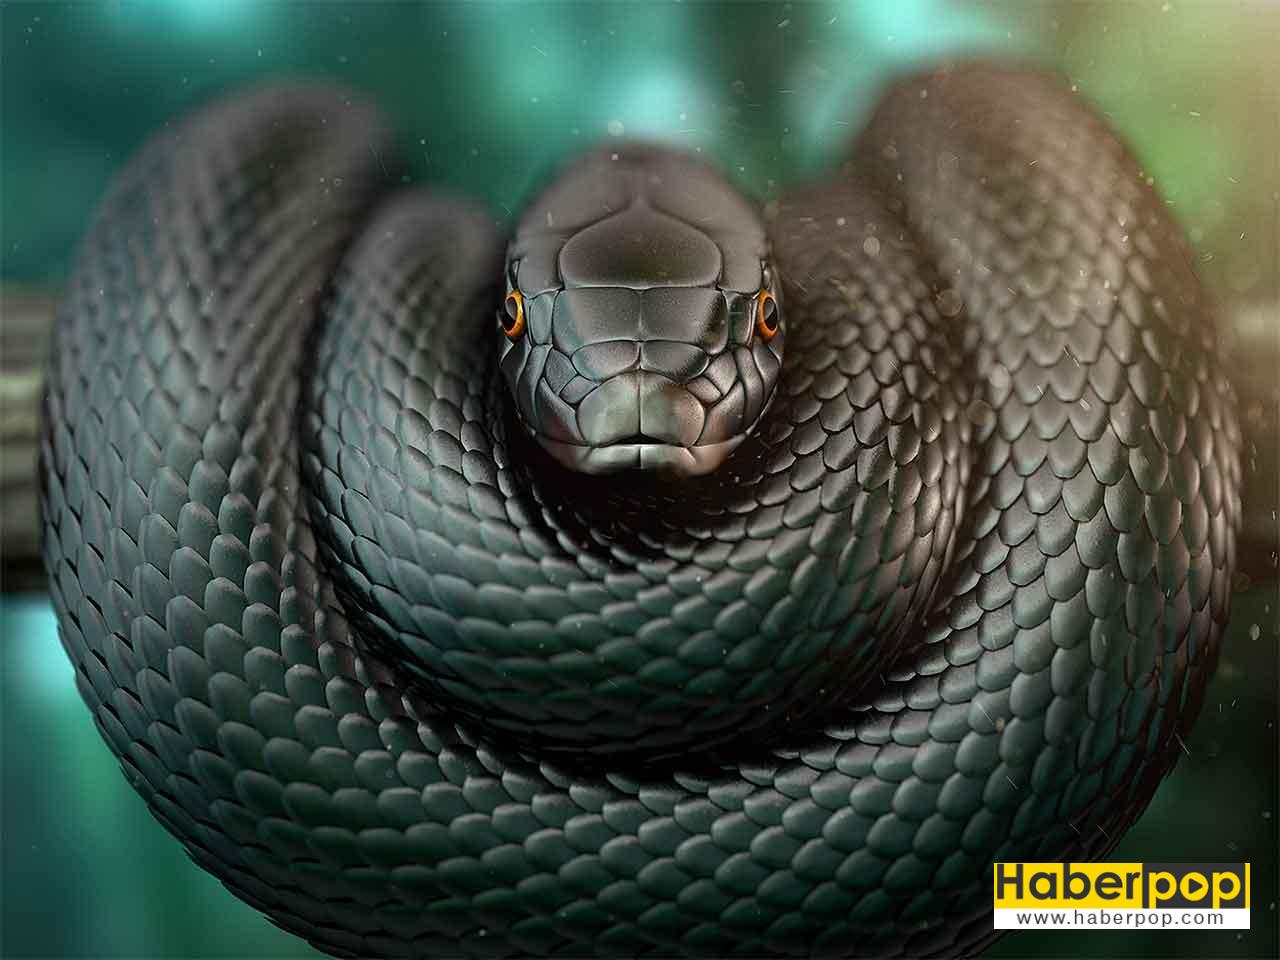 black mamba the female badass essay Search the world's information, including webpages, images, videos and more google has many special features to help you find exactly what you're looking for.